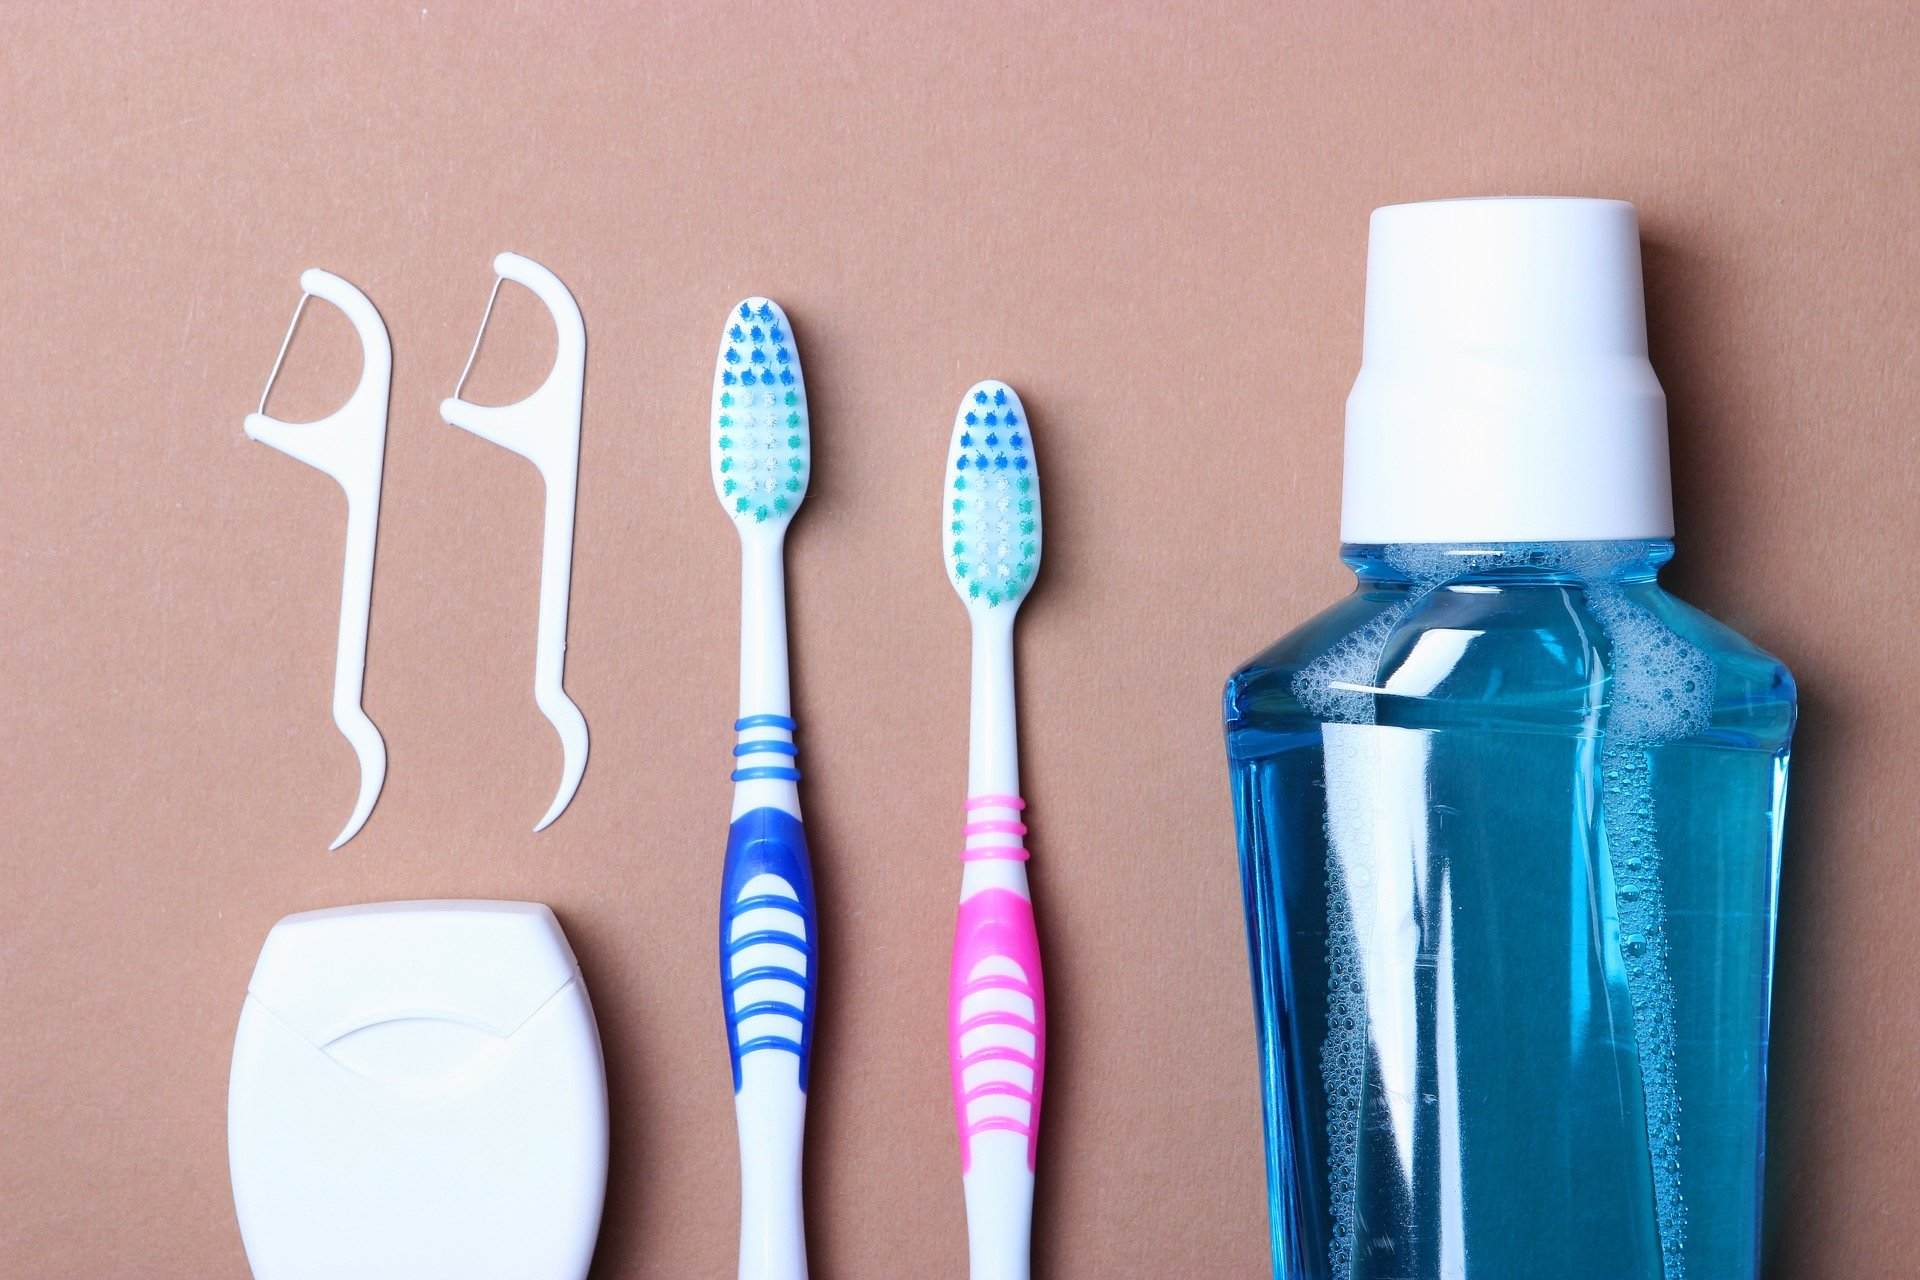 Toothbrushes, floss, and floss picks